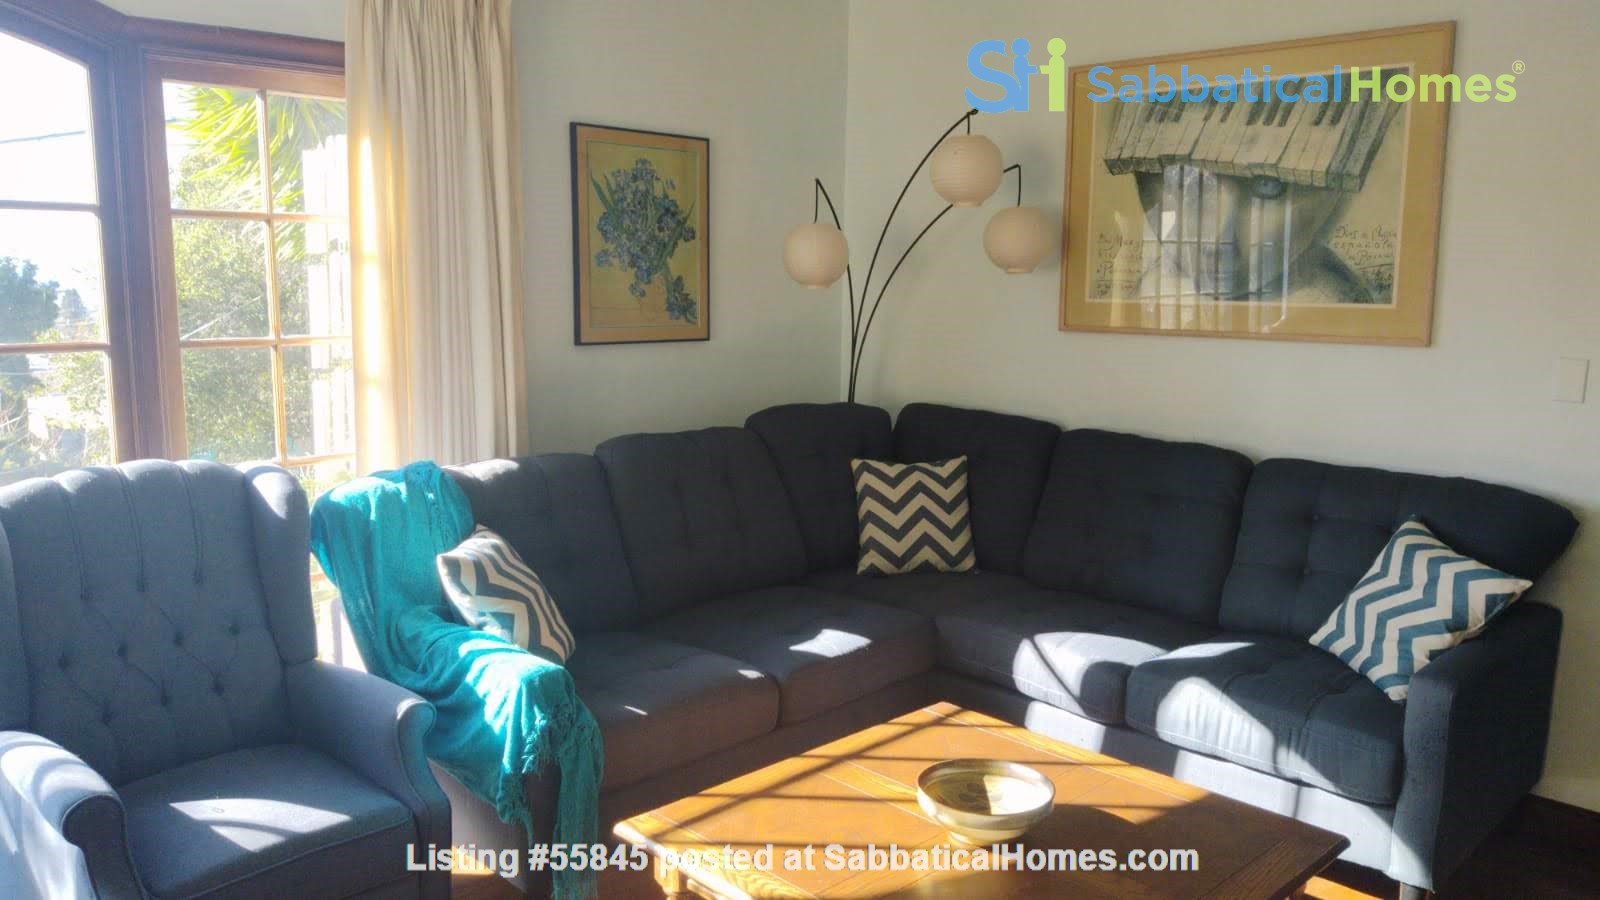 Well-located family home near parks, Gourmet Ghetto, UC Berkeley Home Rental in Berkeley, California, United States 4